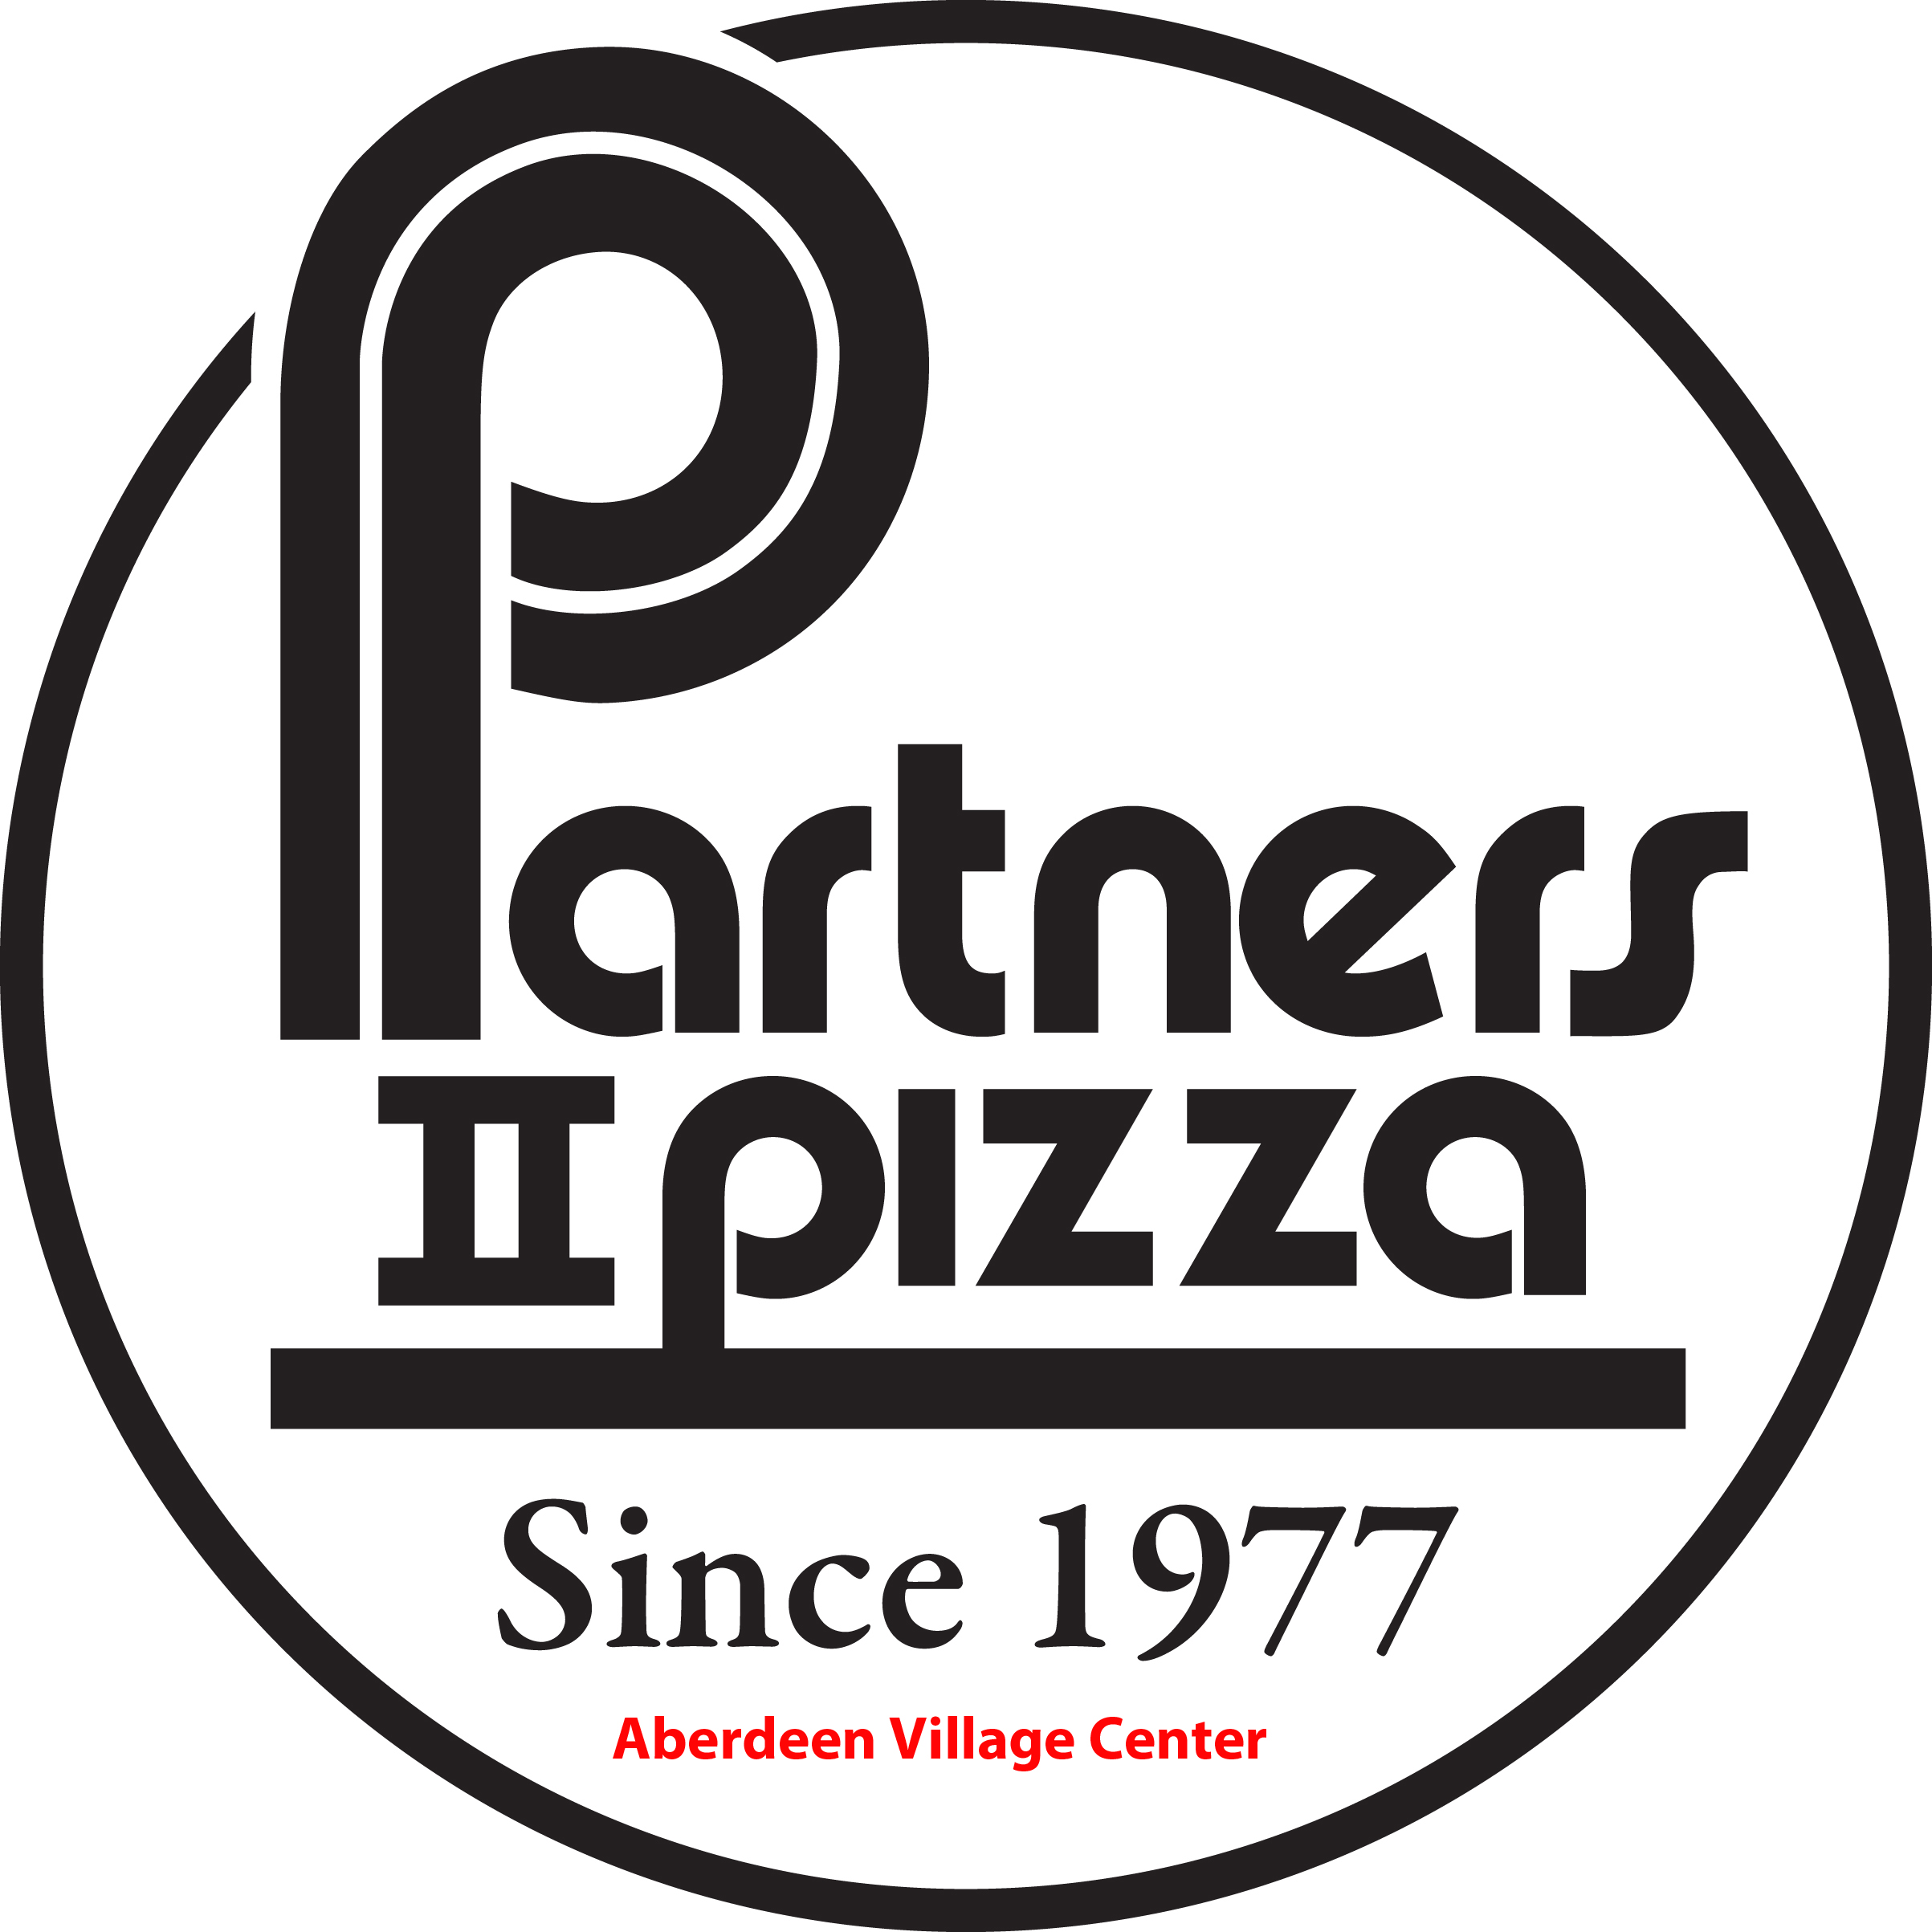 Aberdeen Village Center - Partners II Pizza